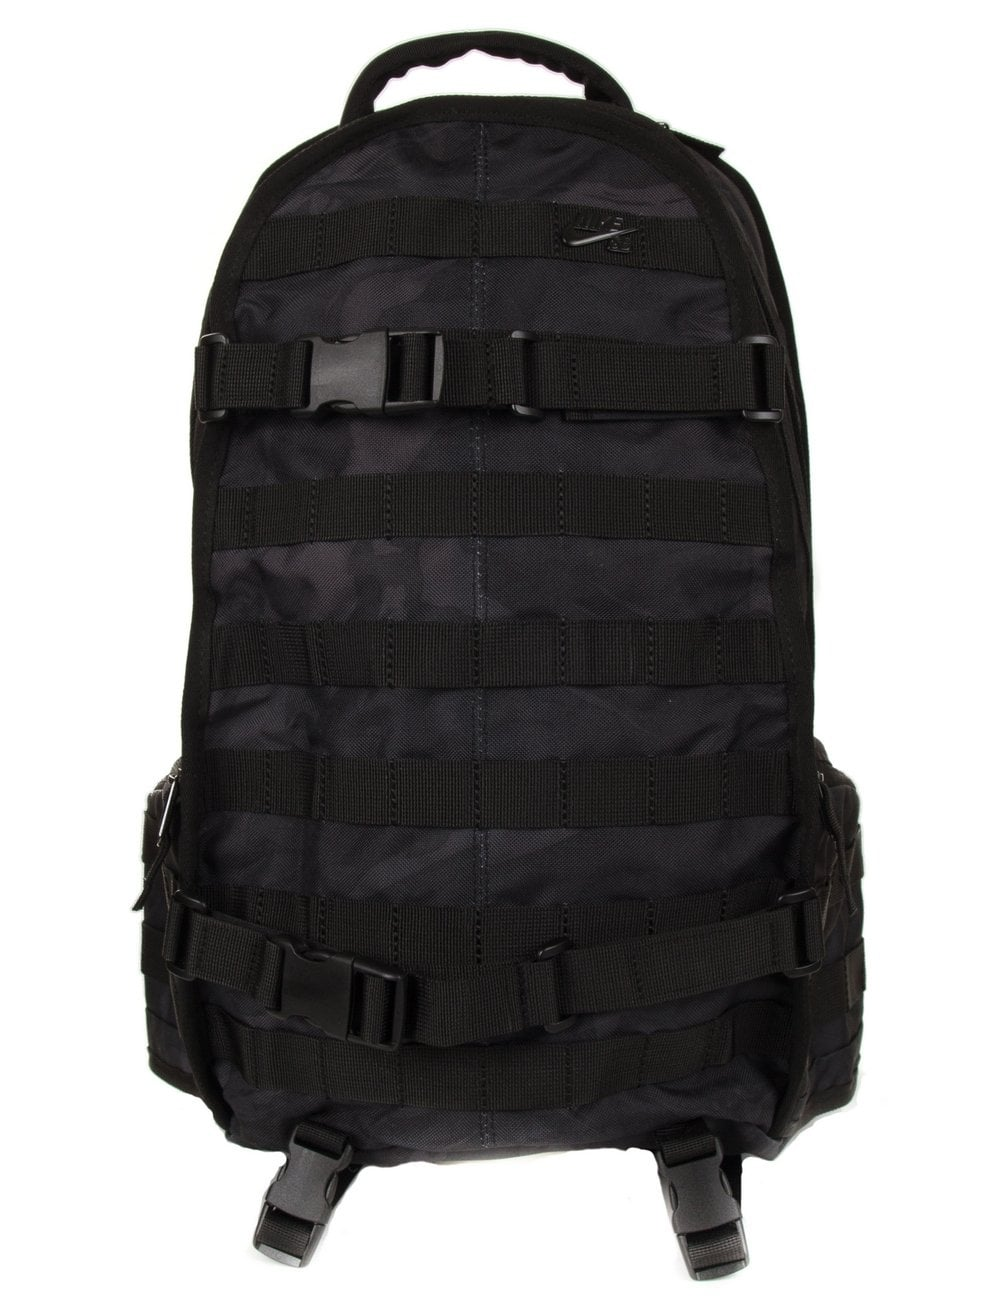 057c87cab36a Nike SB RPM Backpack - Black - Accessories from Fat Buddha Store UK